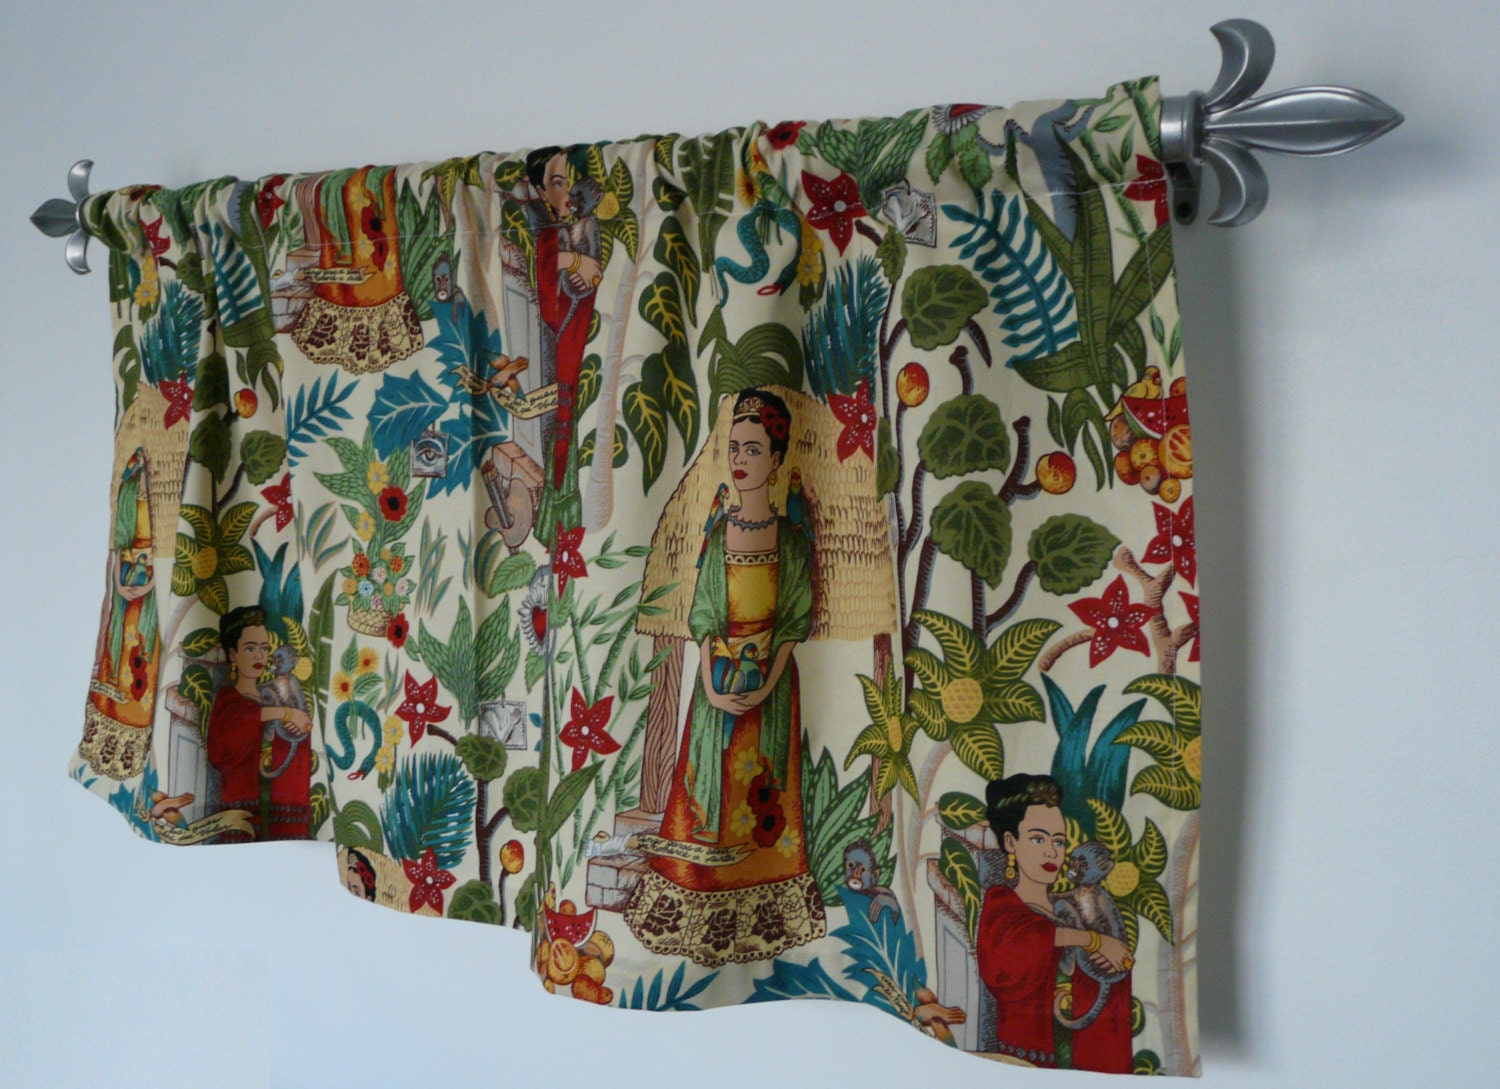 frida kahlo home decor artsy cafe frida by paisleyladydesigns frida kahlo home design ideas pictures remodel and decor